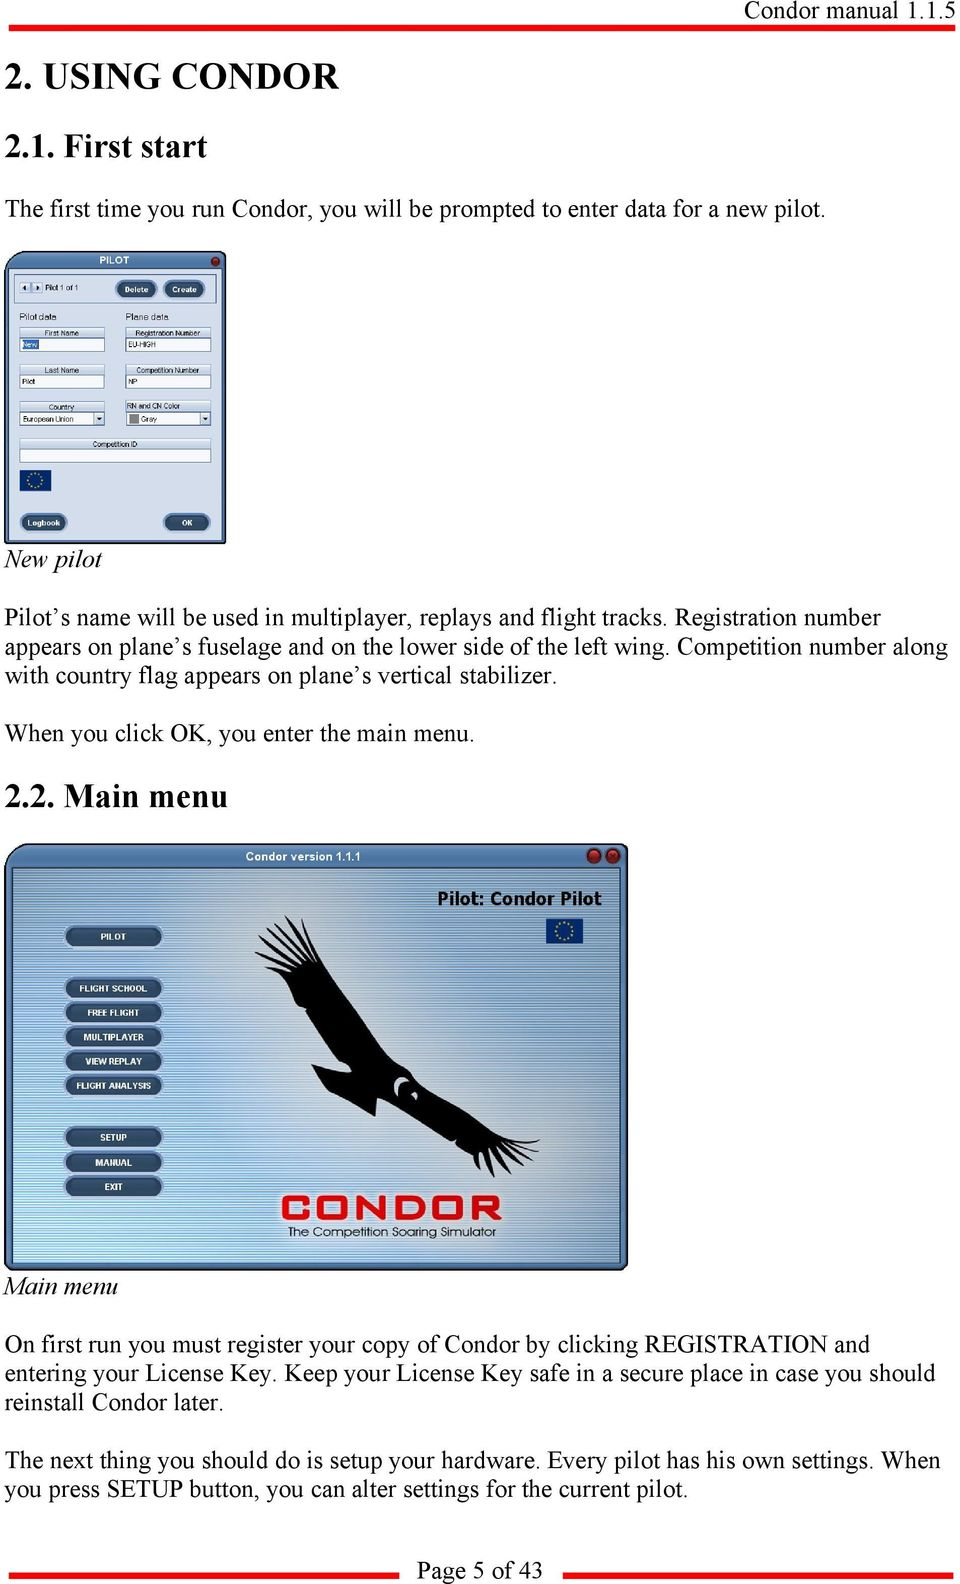 Condor Manual Onanmarquis5000generatorwiring Motorhome 2520t1977dodge Array Page 1 Of 43 Pdf Rh Docplayer Net